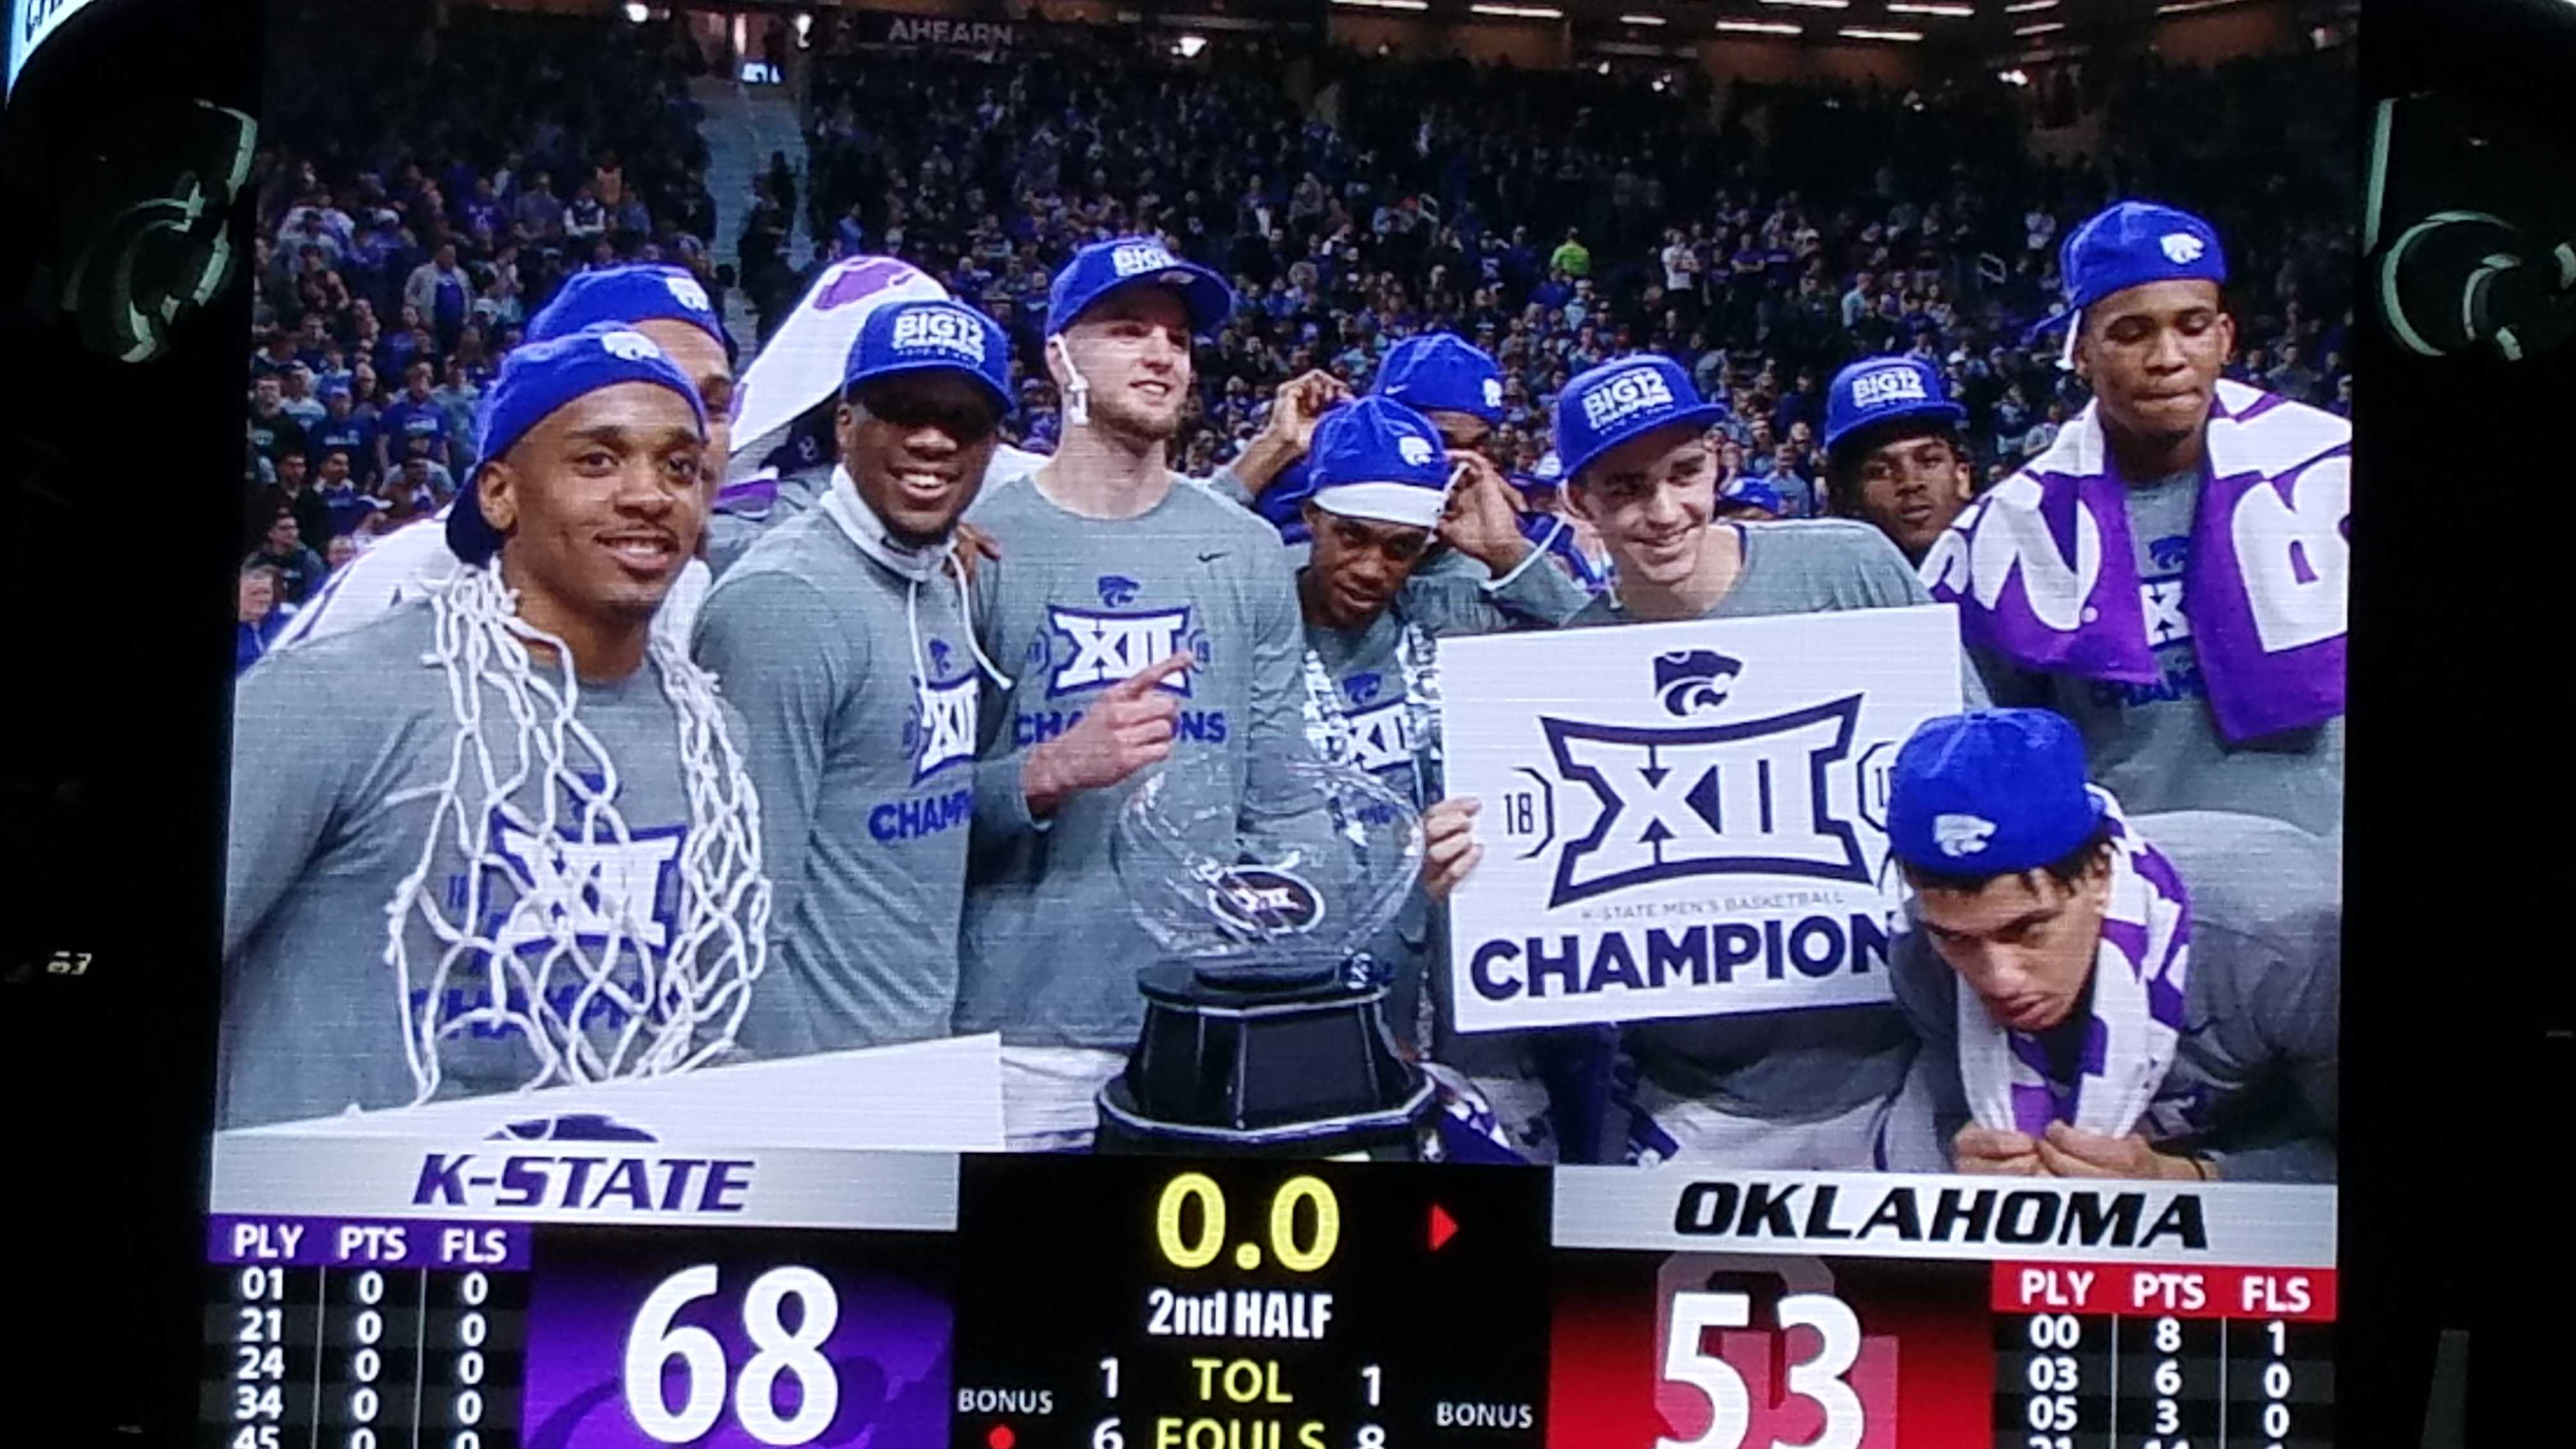 a57dc43a3208 Kansas State routs Oklahoma 68-53 to capture Big 12 title - Bring On ...